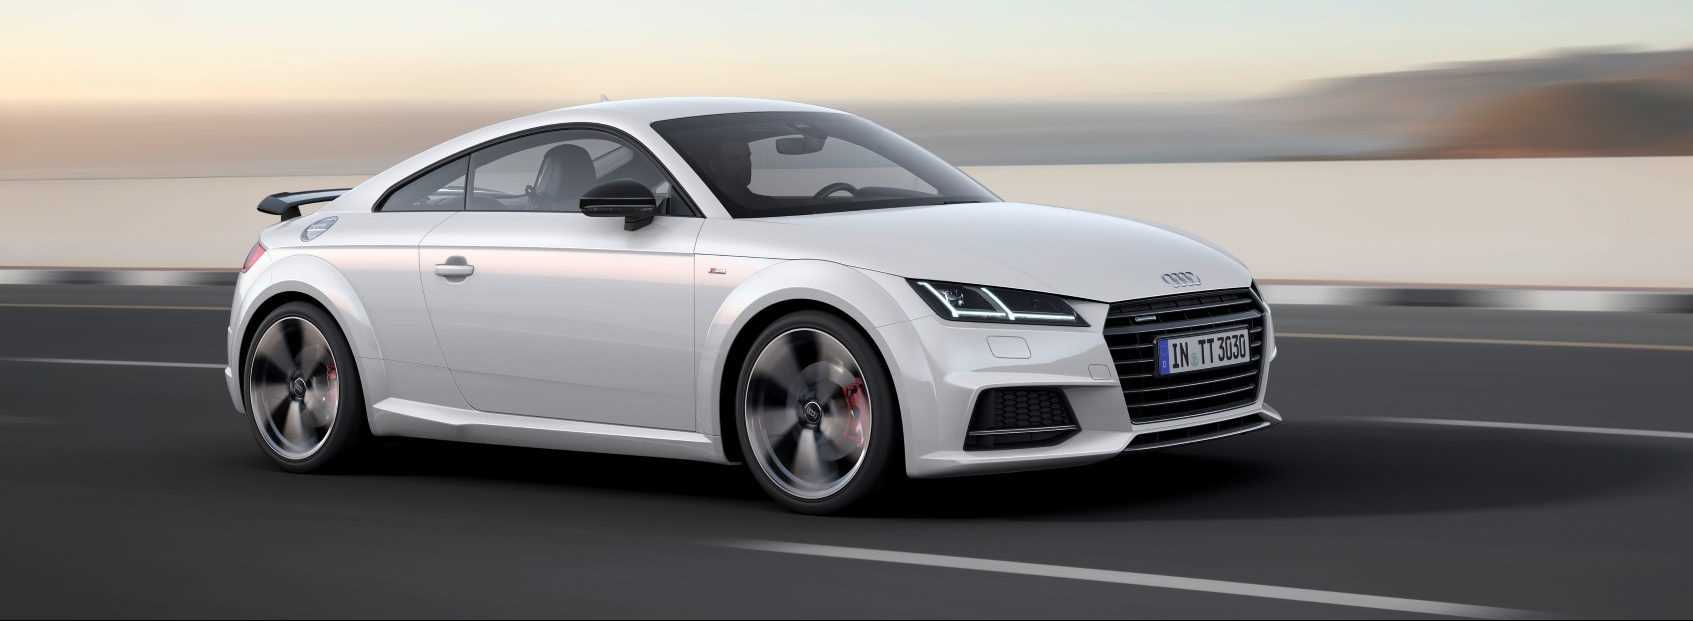 Audi TT Coupé Competition 2017